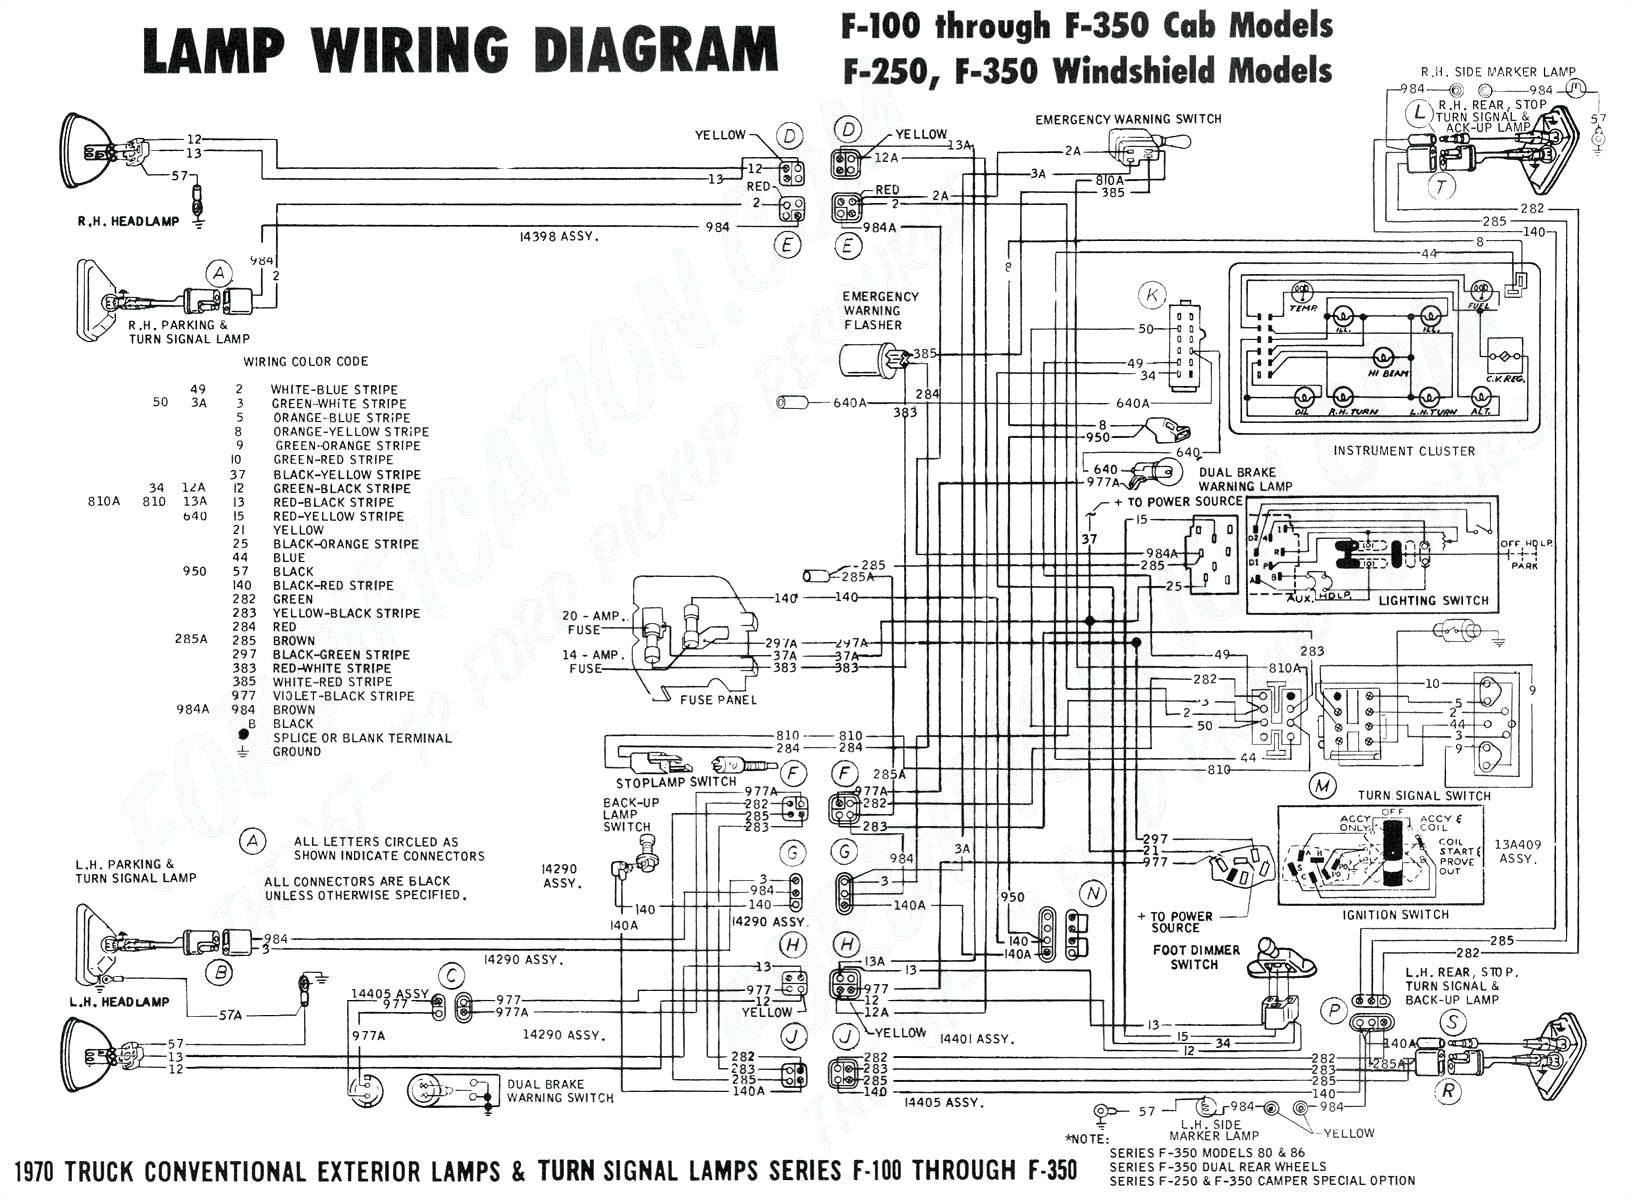 77 ford blower wiring wiring diagram technic77 ford f 150 engine diagram wiring diagram used1977 f150